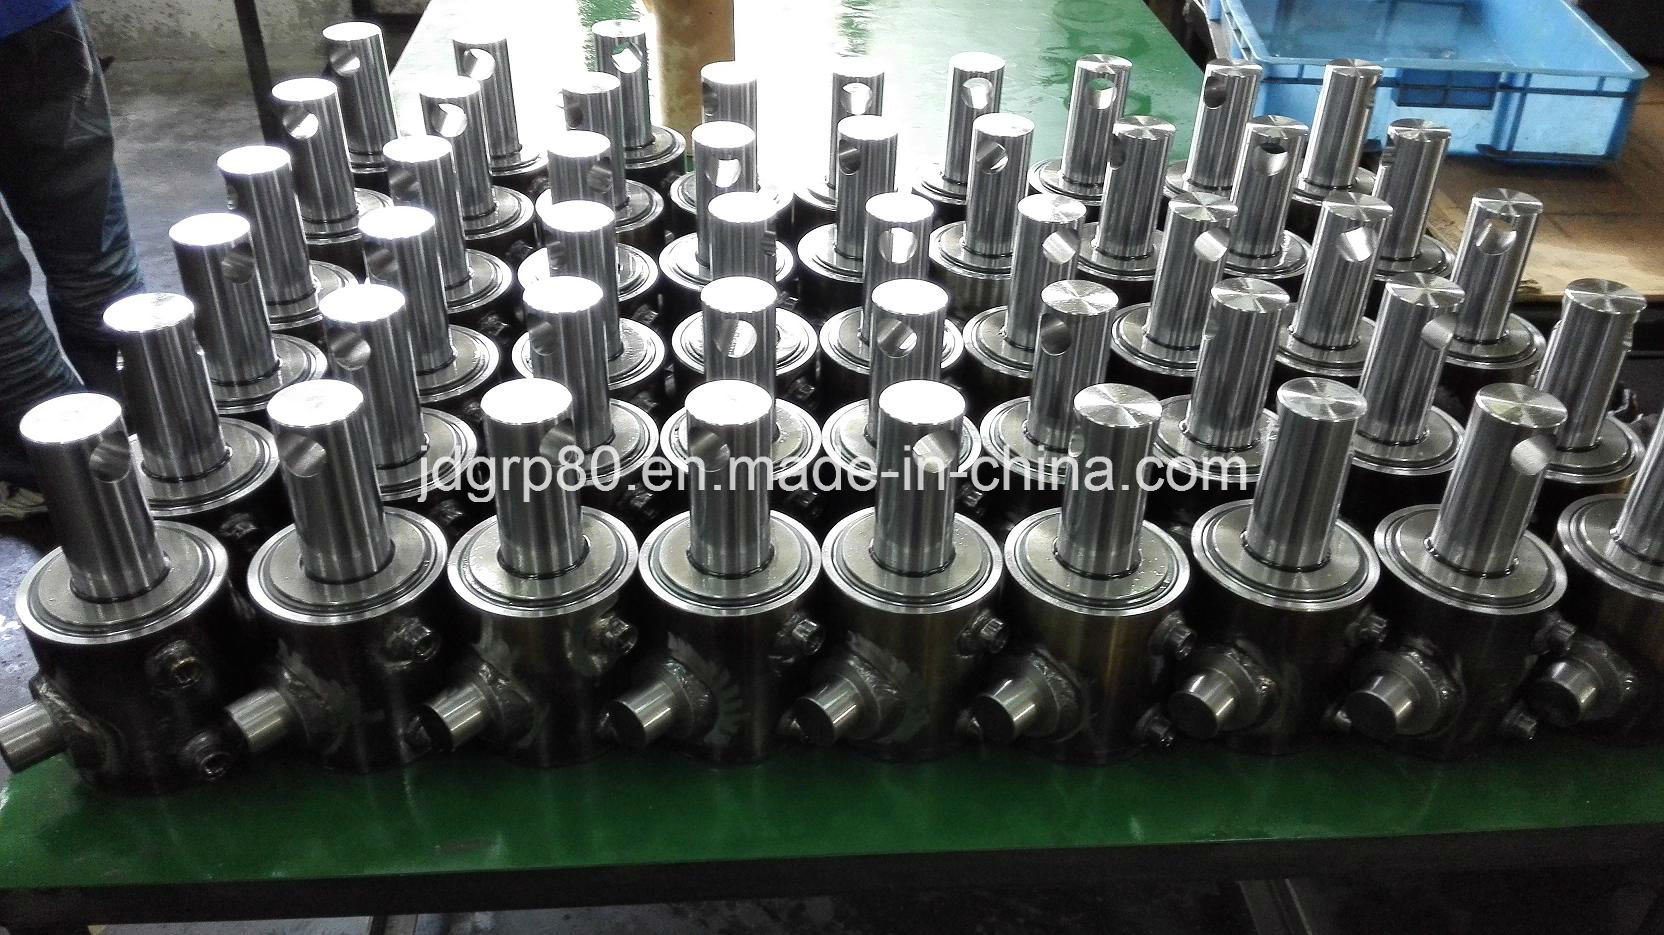 Hydraulic Cylinder for USA Market Custom-Made